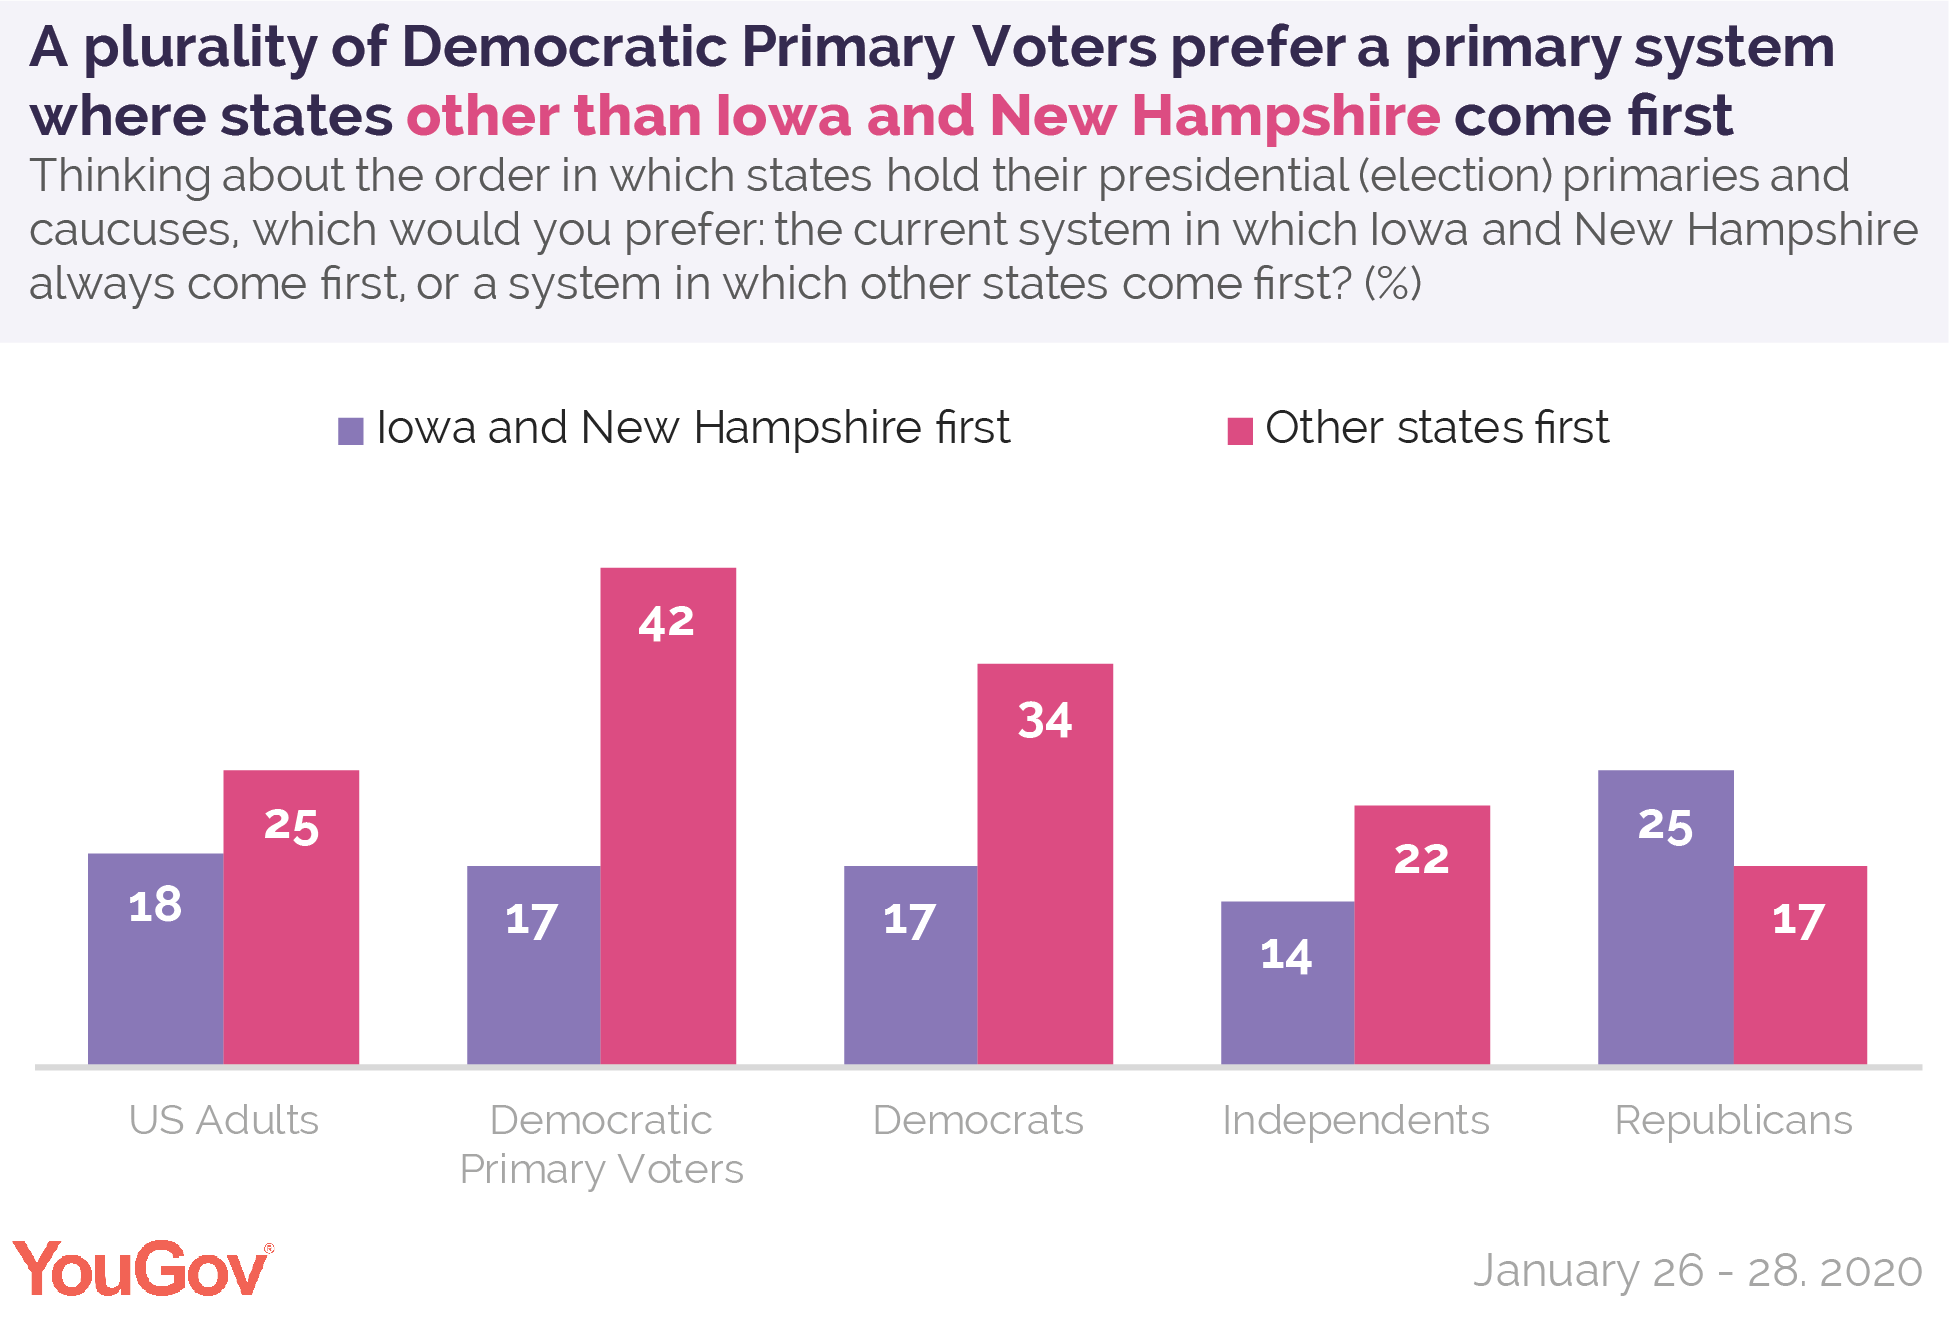 A plurality of Democratic primary voters prefer a primary system where states other than Iowa and New Hampshire come first